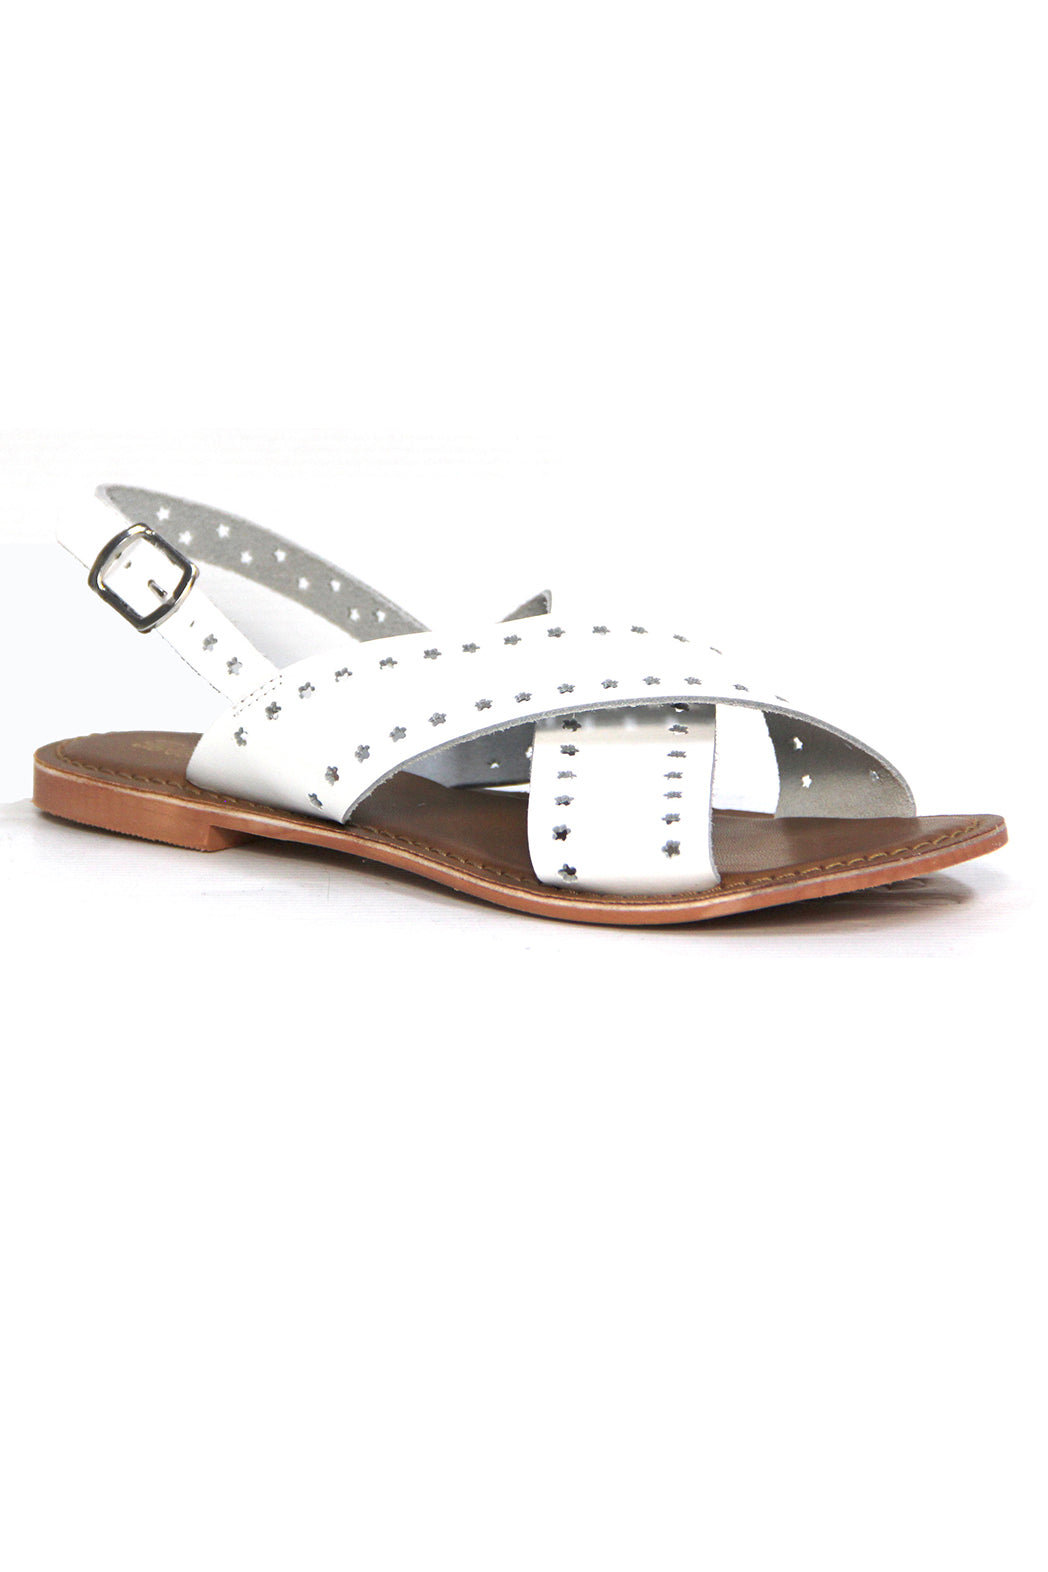 Just Because Malita Sandal in White